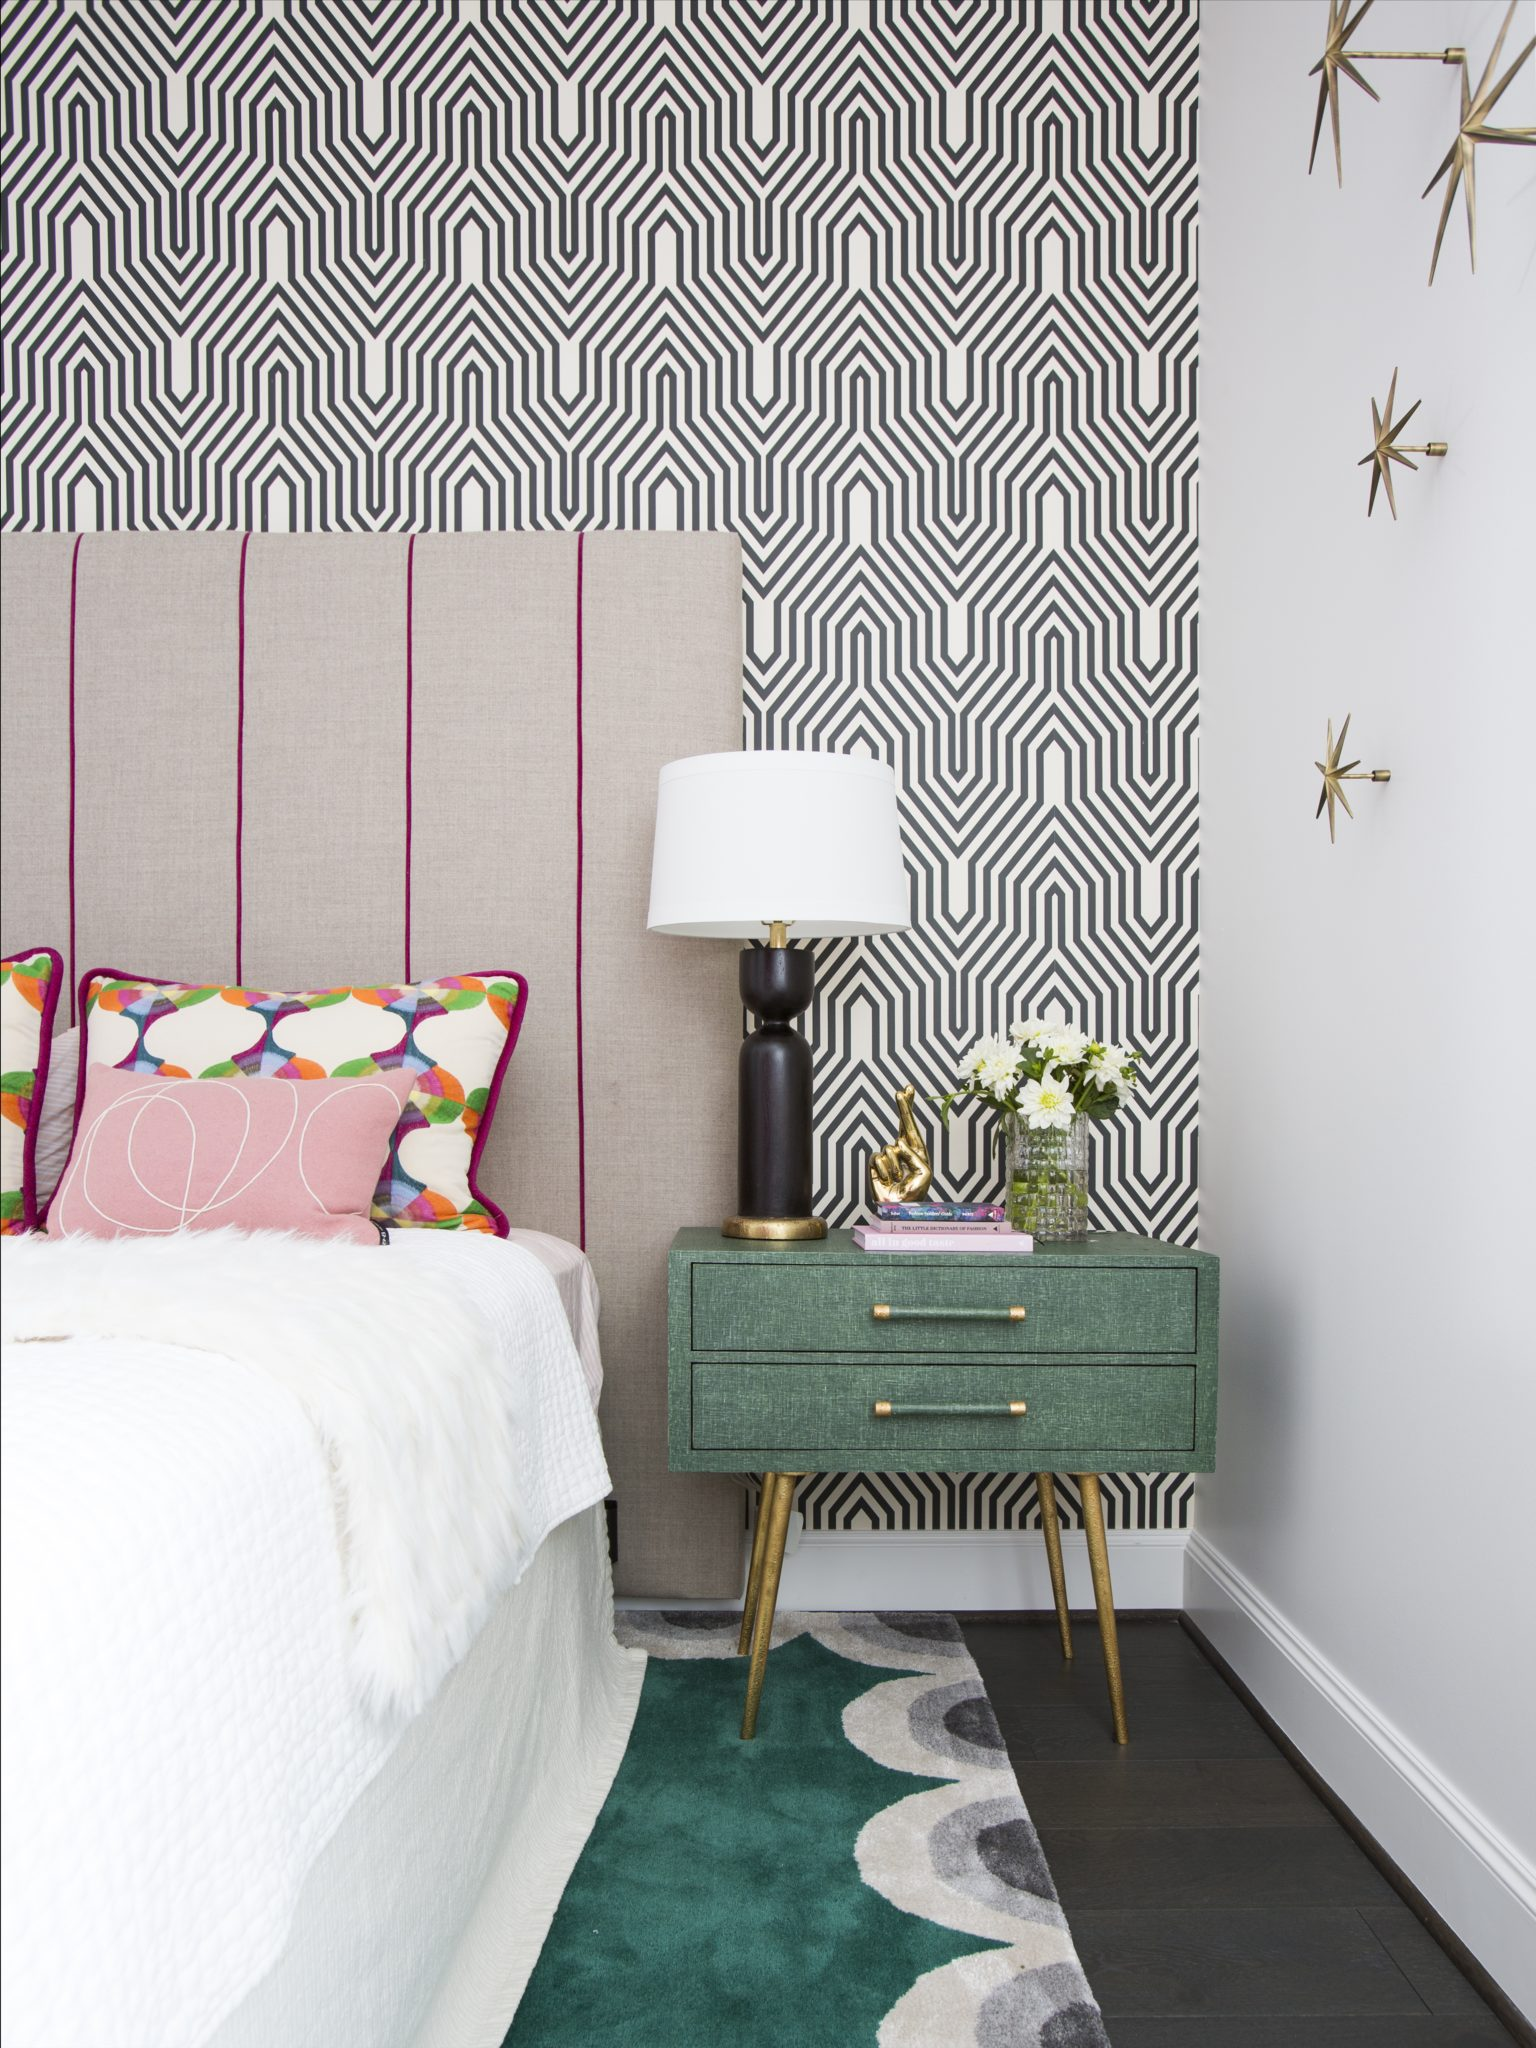 Houston high-rise, fun and unique girl's bedroom with geometric wallpaper by Laura U, Inc.